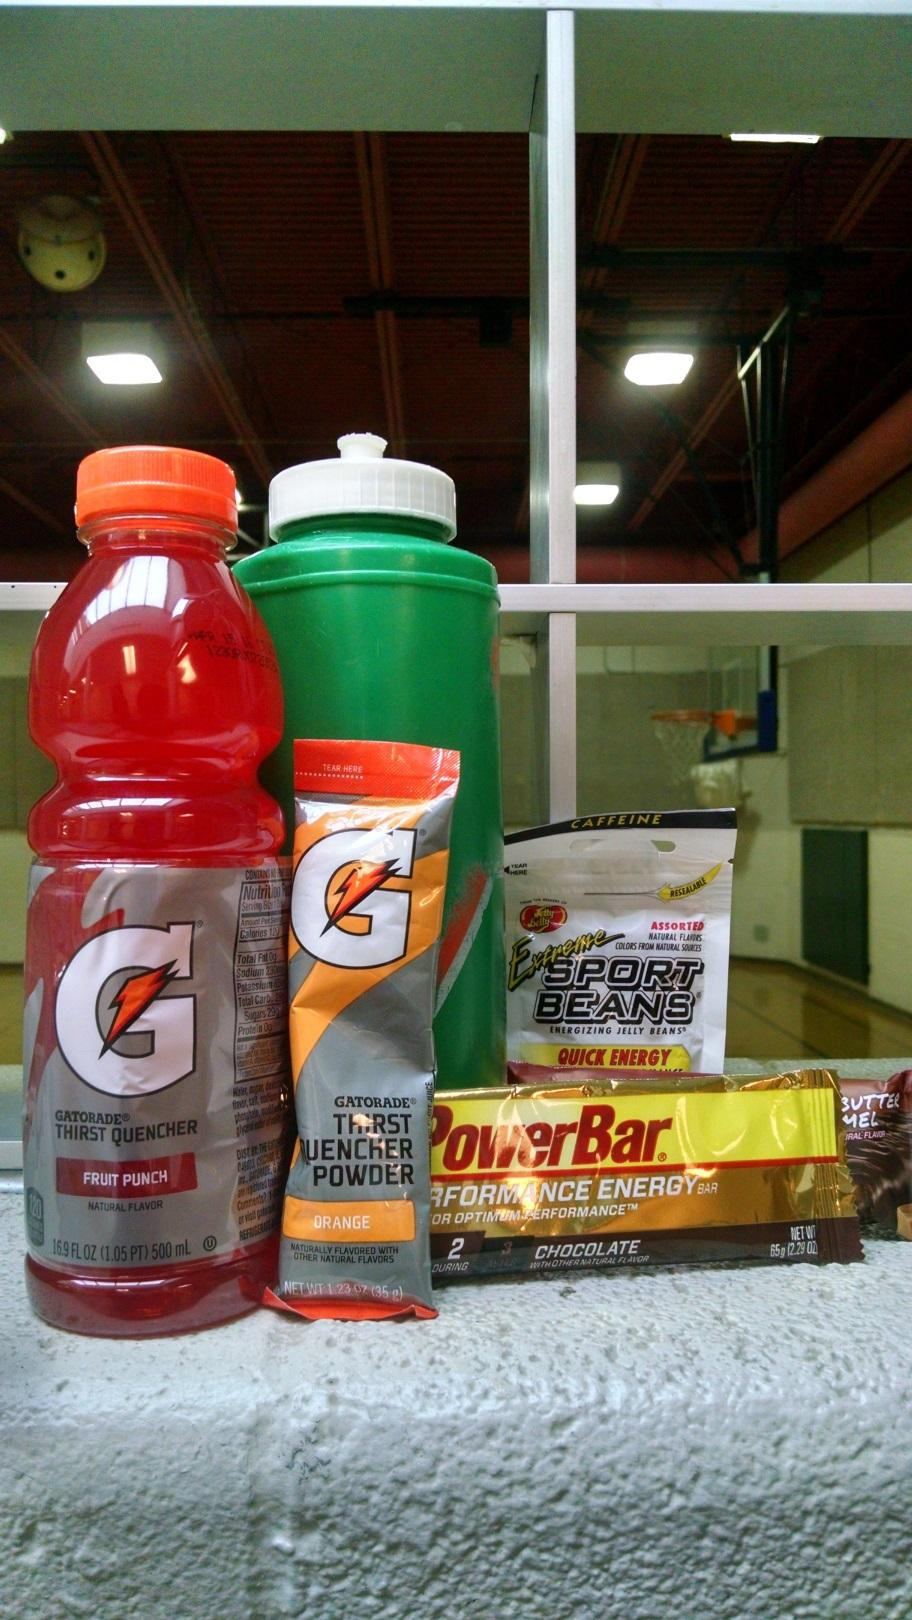 Gatorade provided CHS sports teams with free products including drinks, energy chews and protein bars.